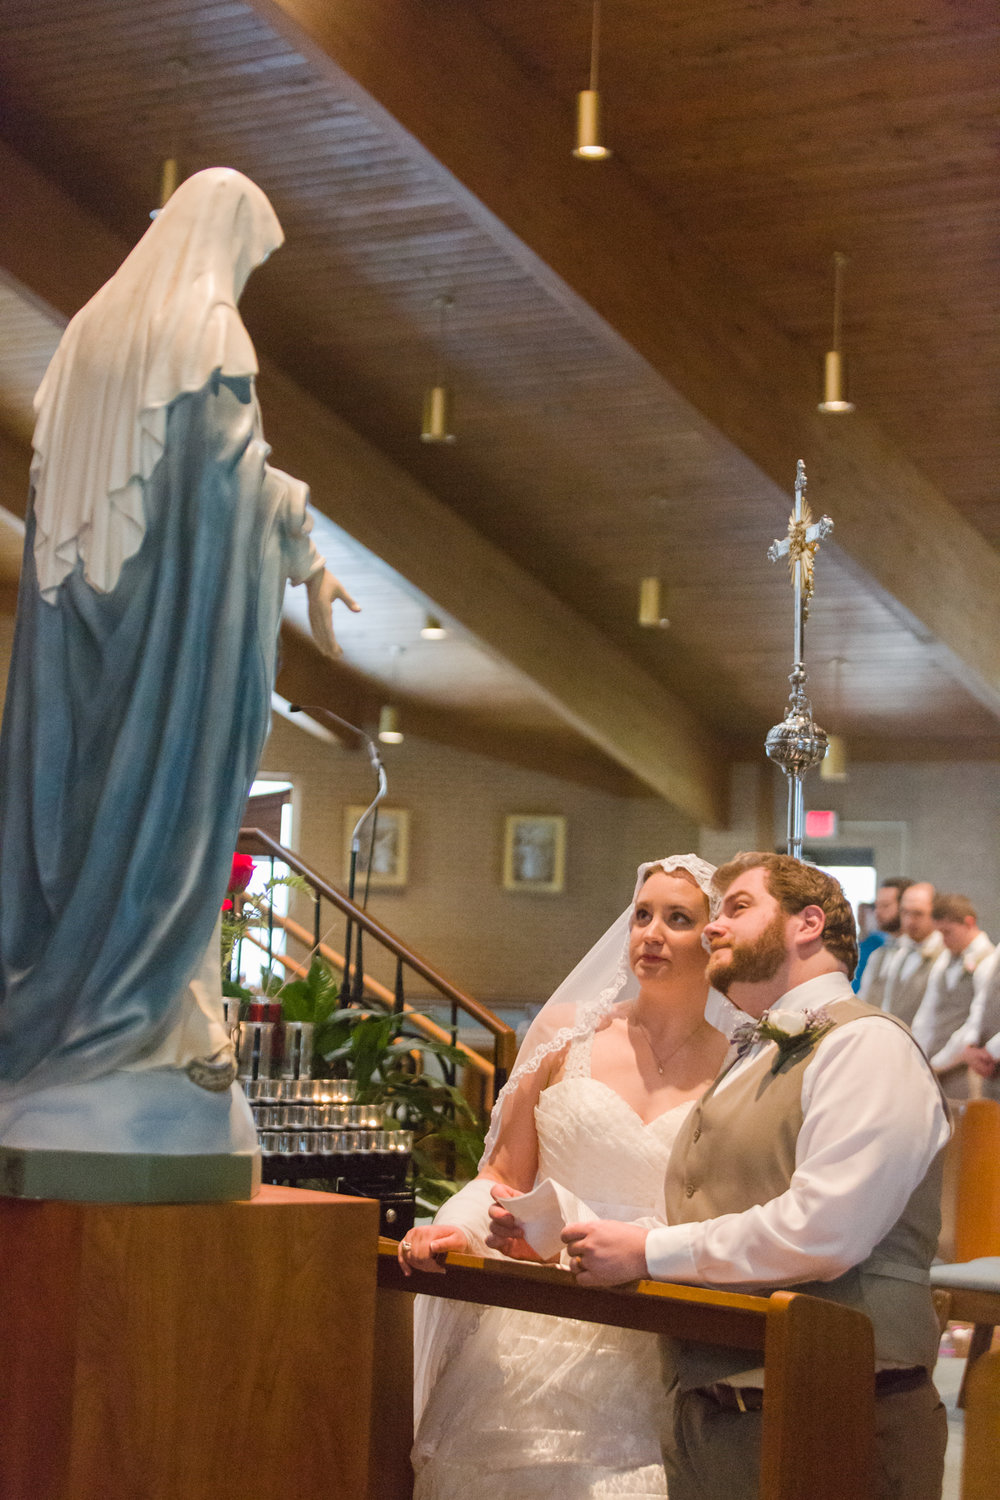 Bekah and Shea pray before the statue of Our Blessed Mother during their wedding in June.